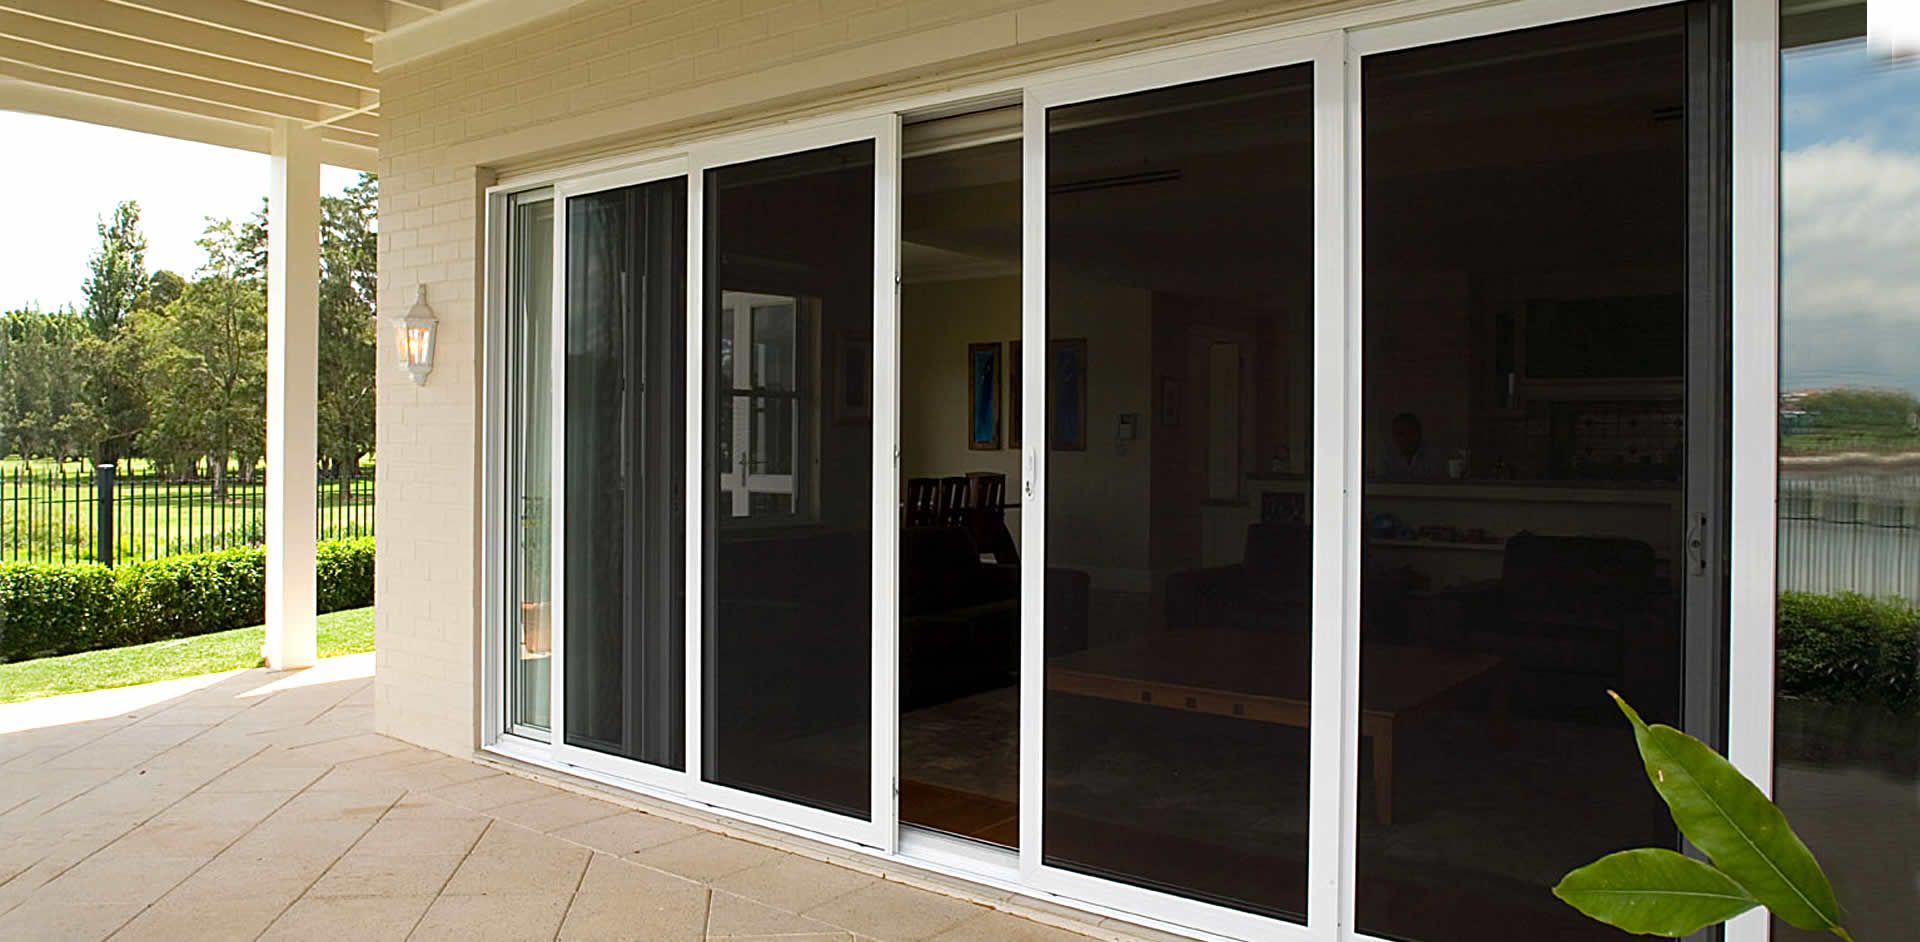 Vusafe Security Screens For Doors And Windows Provide The Protection Of Steel With The Look Of An Sliding Screen Doors Security Screen Door Custom Patio Doors